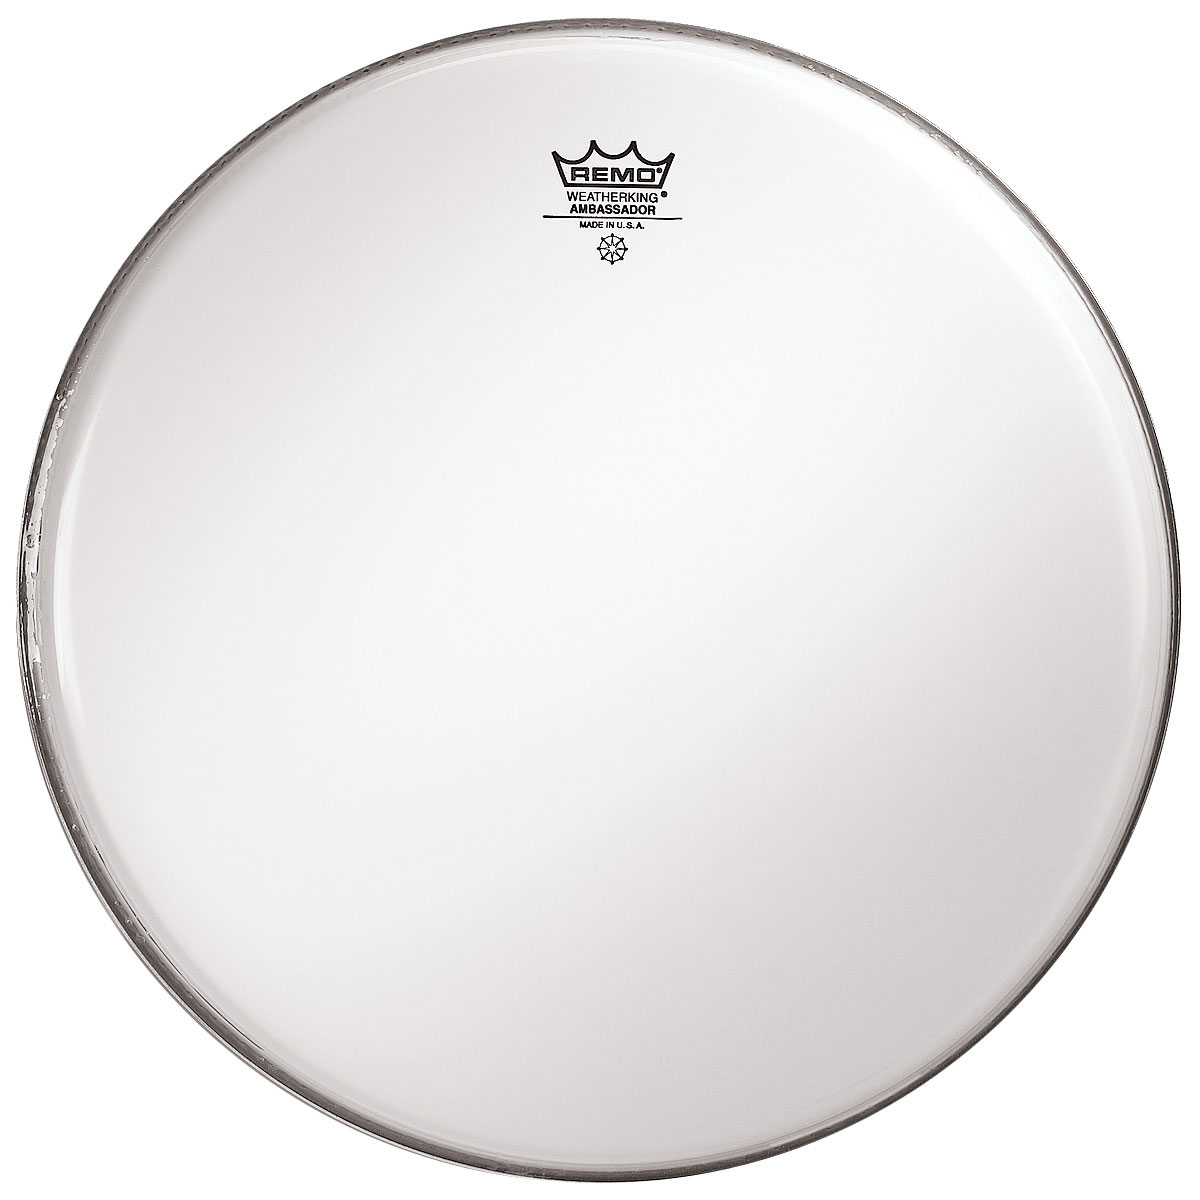 "Remo 13"" Ambassador Smooth White Drum Head"